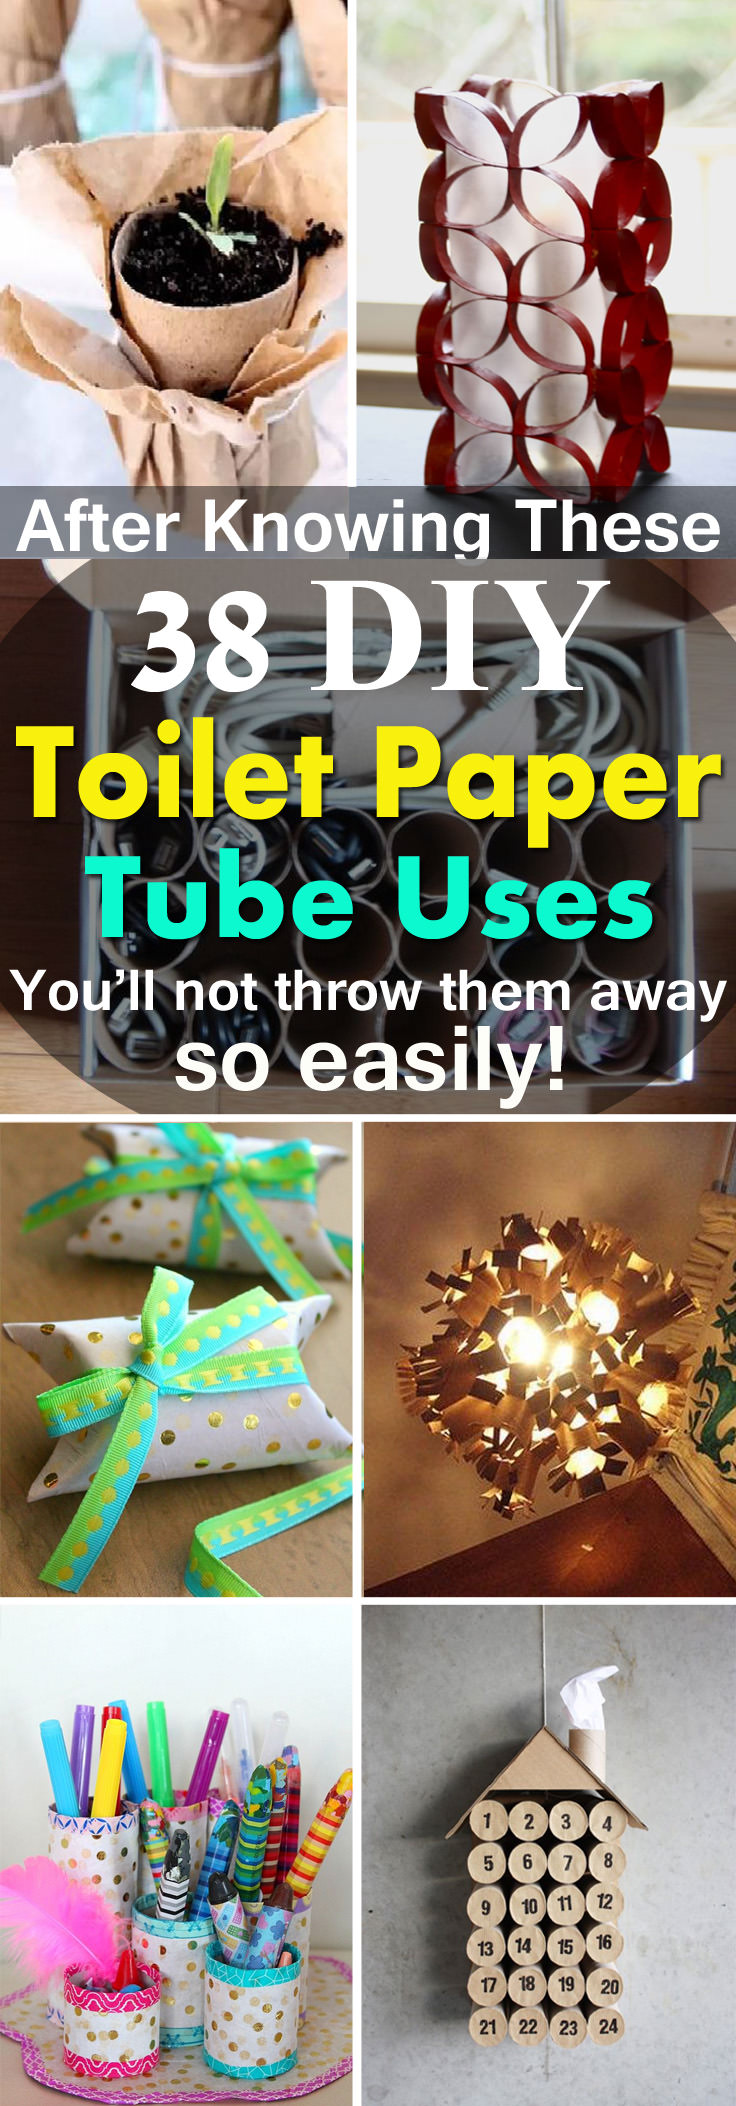 After learning these 38 DIY Toilet Paper Tube Crafts you'll not throw them away into the trash so easily!